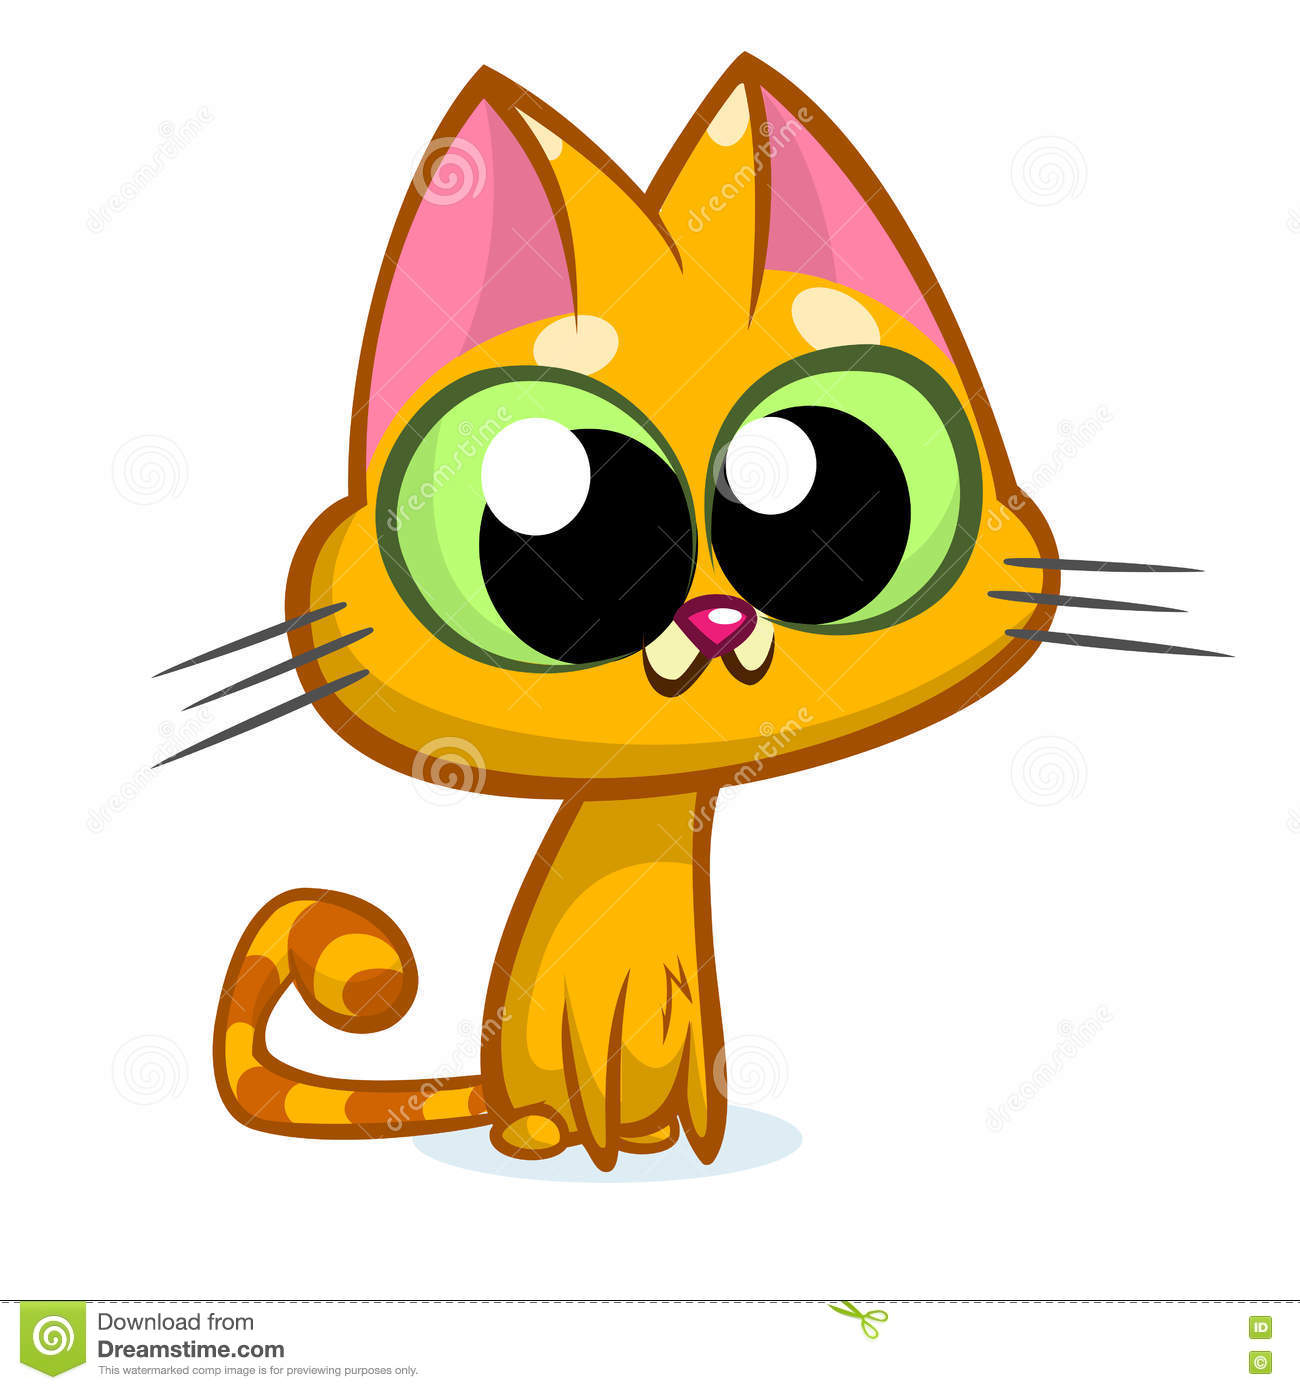 Clipart ktty with big eyes jpg download Illustration Of An Orange Striped Cat With Big Eyes Sitting And ... jpg download